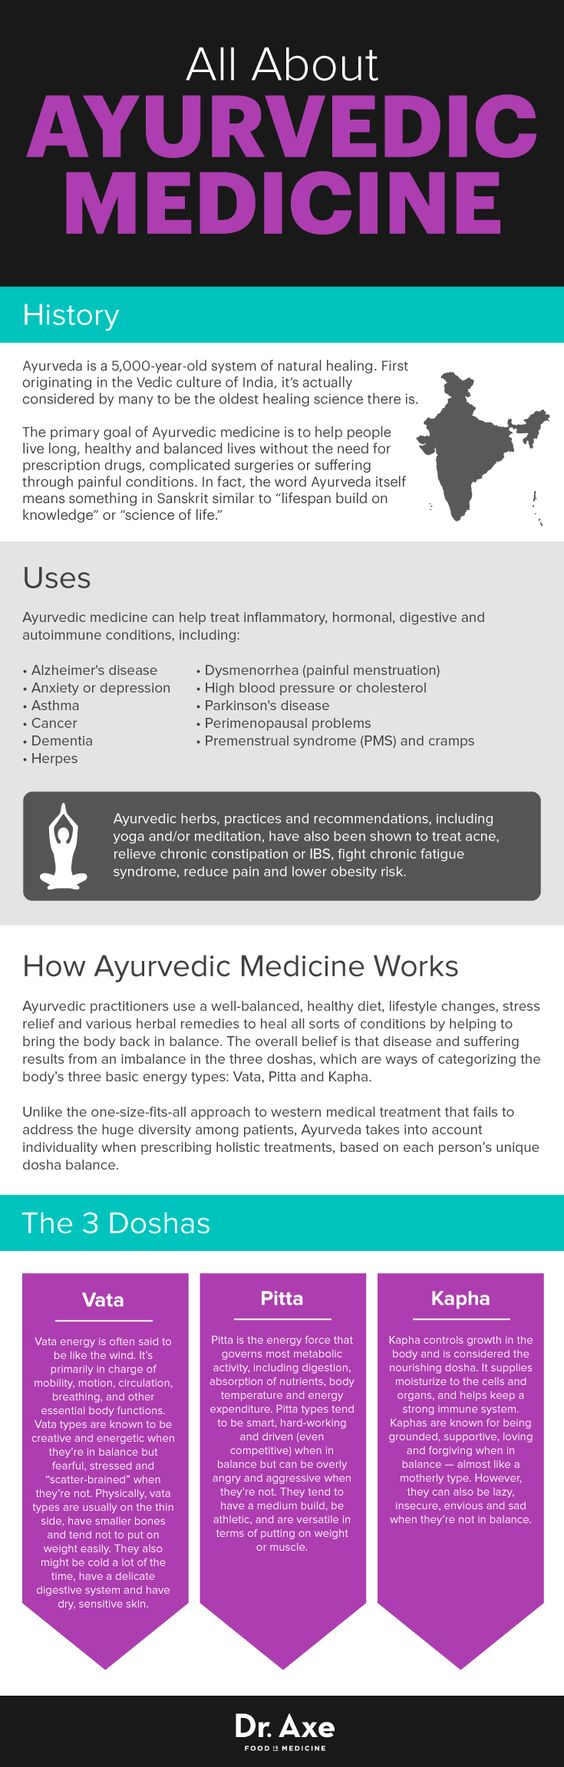 Ayurvedic medicine guide - Dr. Axe http://www.draxe.com #health #holistic #natural: